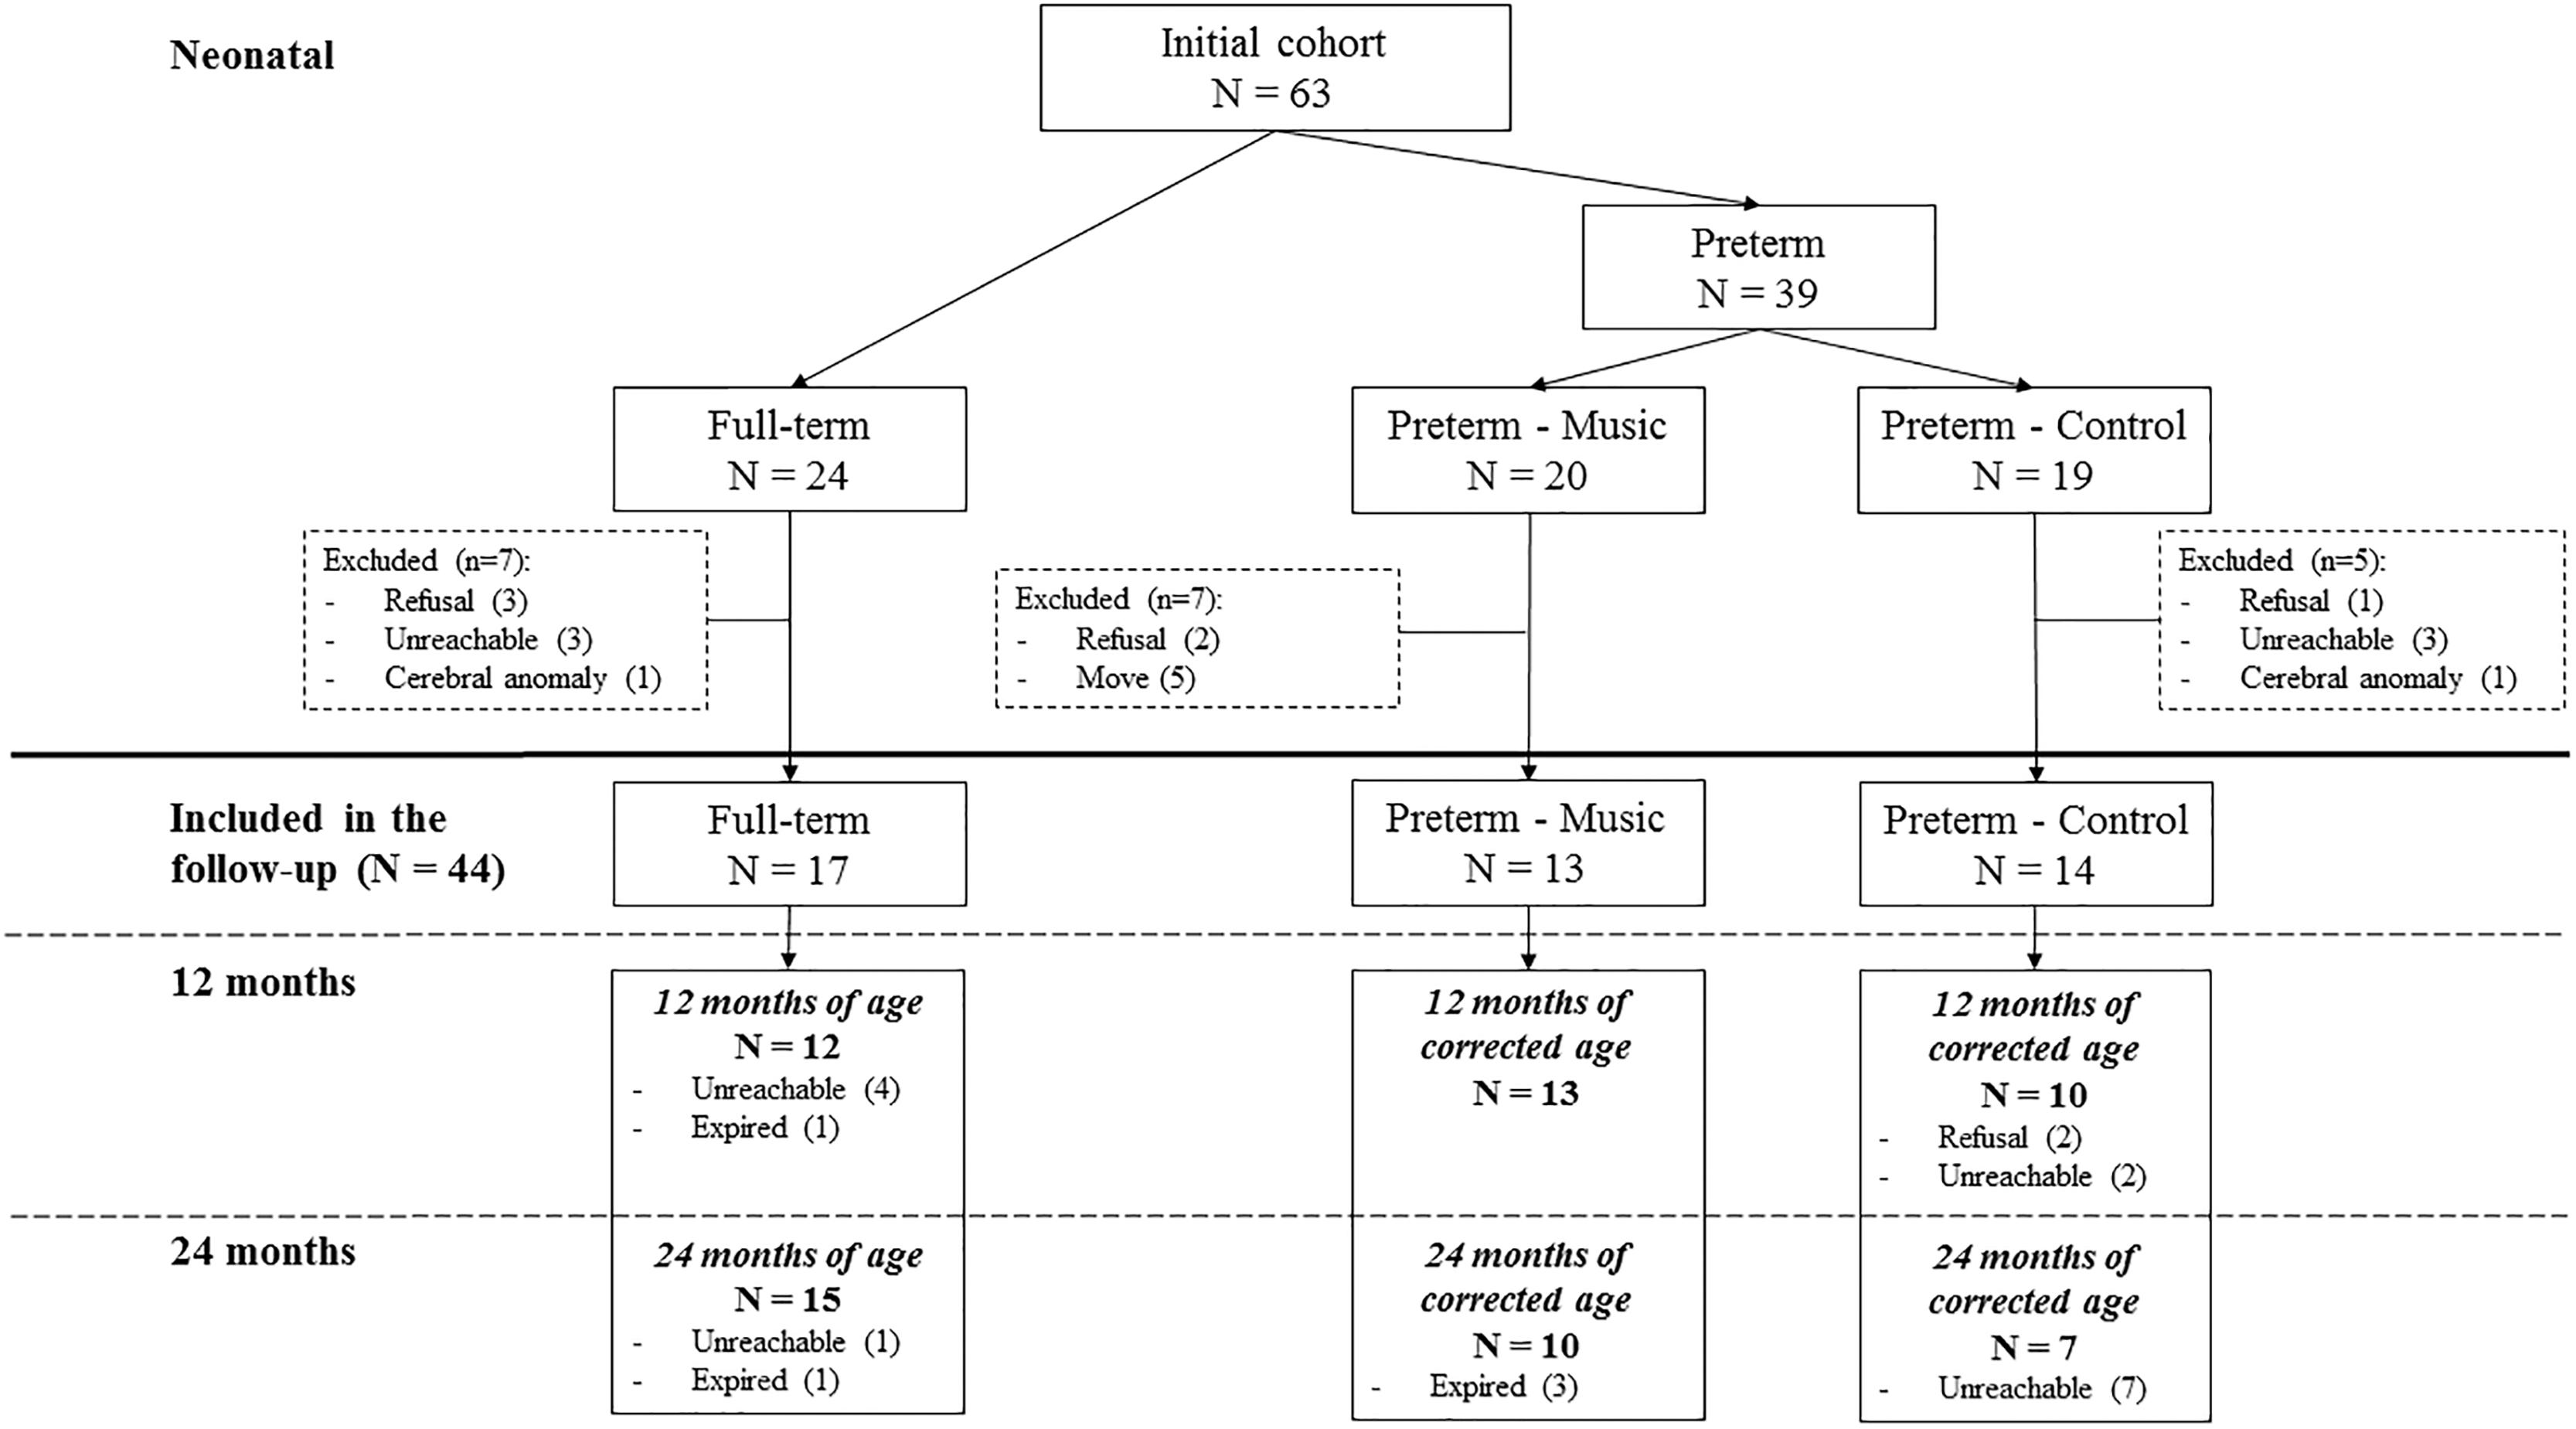 Frontiers Effects Of An Early Postnatal Music Intervention